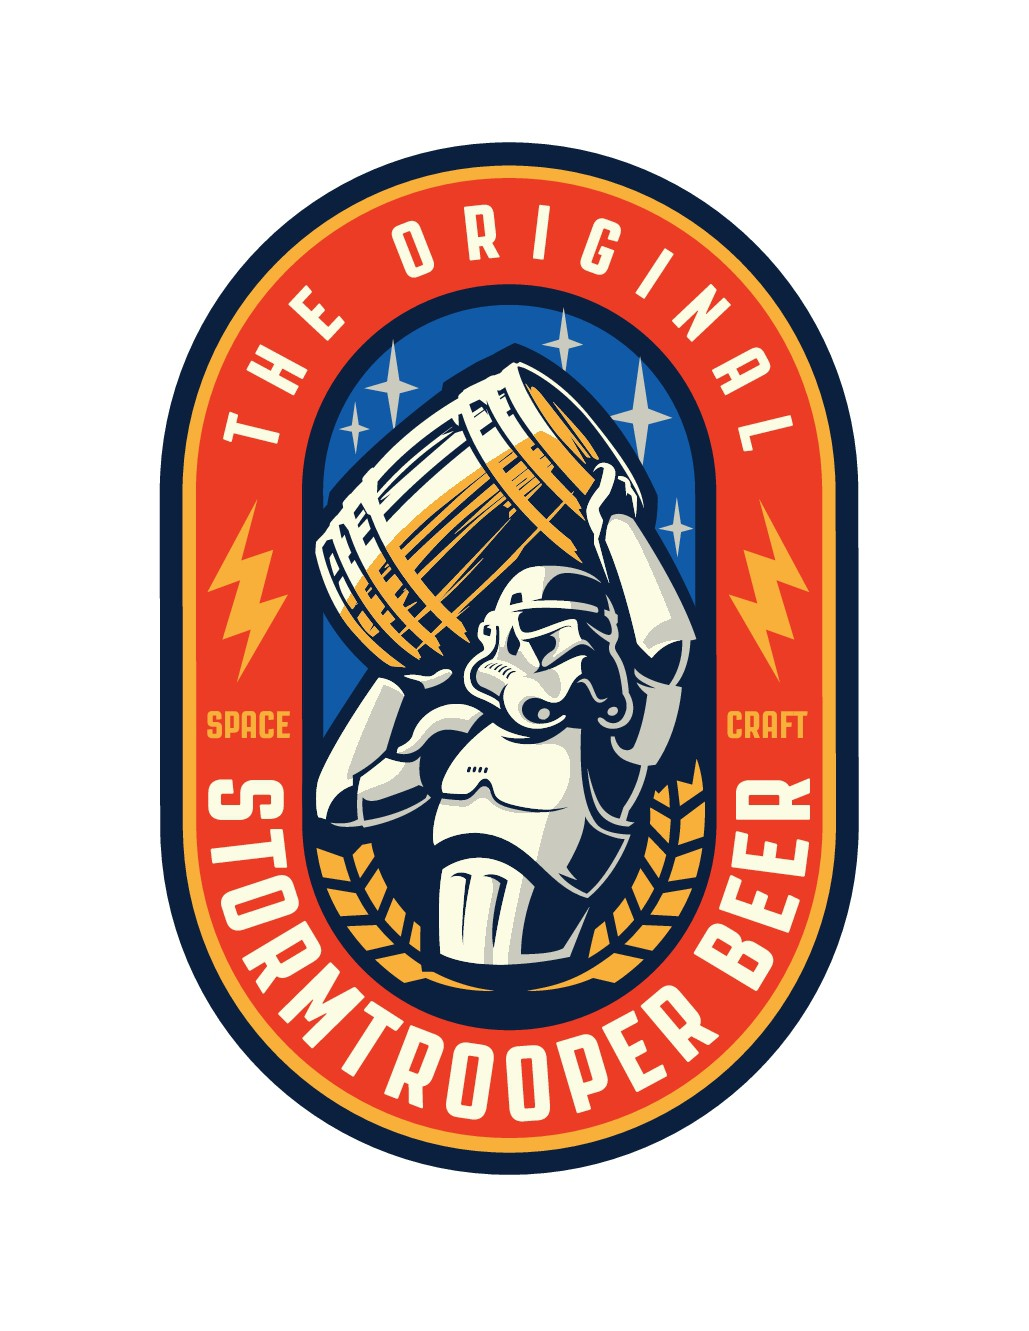 Stormtrooper Beer needs an out of this world logo